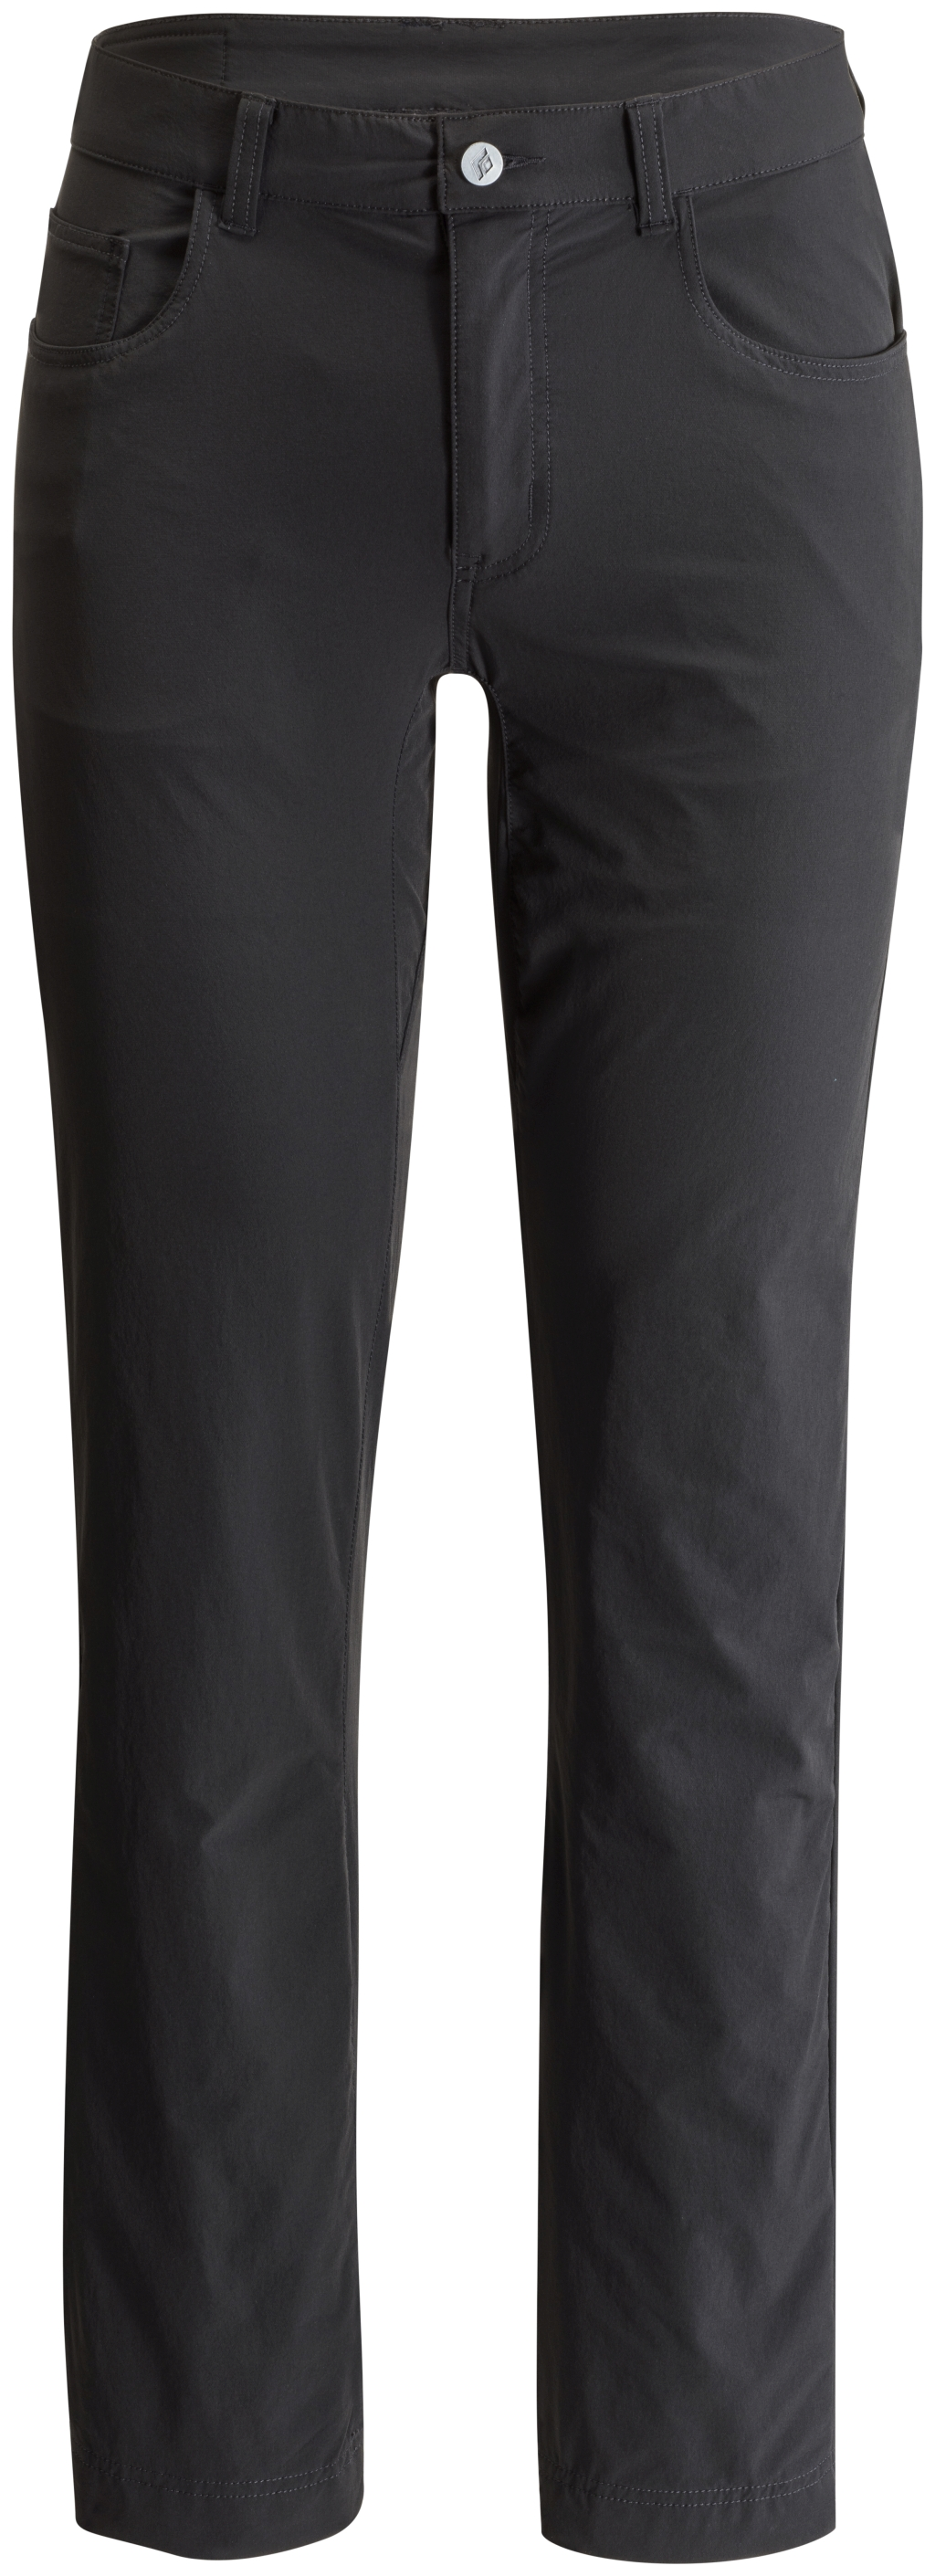 Black Diamond Modernist Rock Pants Smoke-30